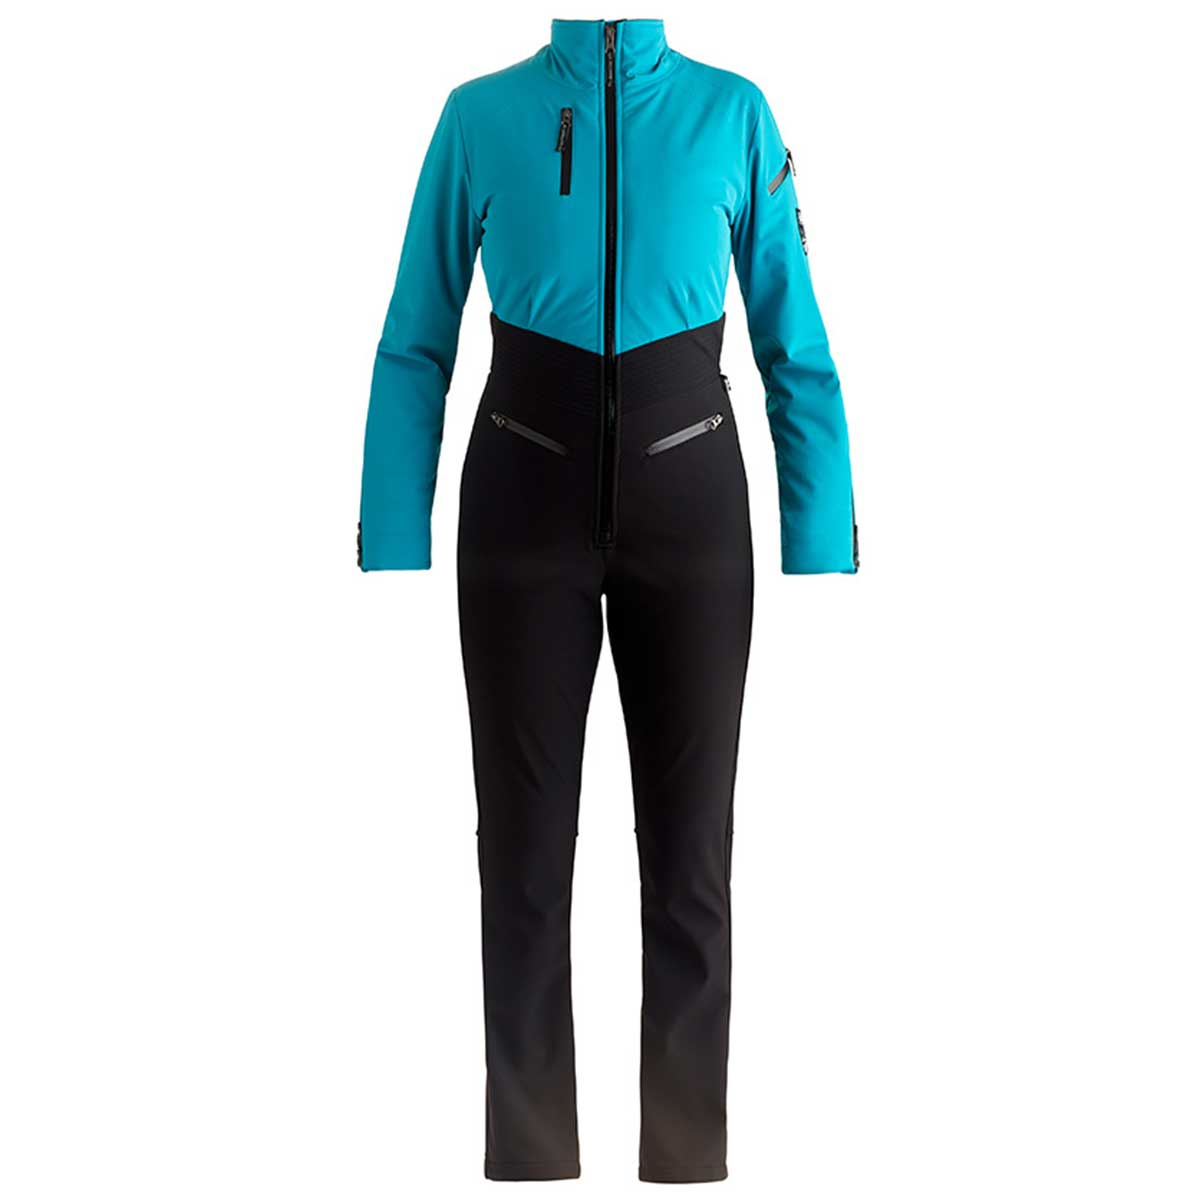 NILS Kora Suit in Aqua and Black